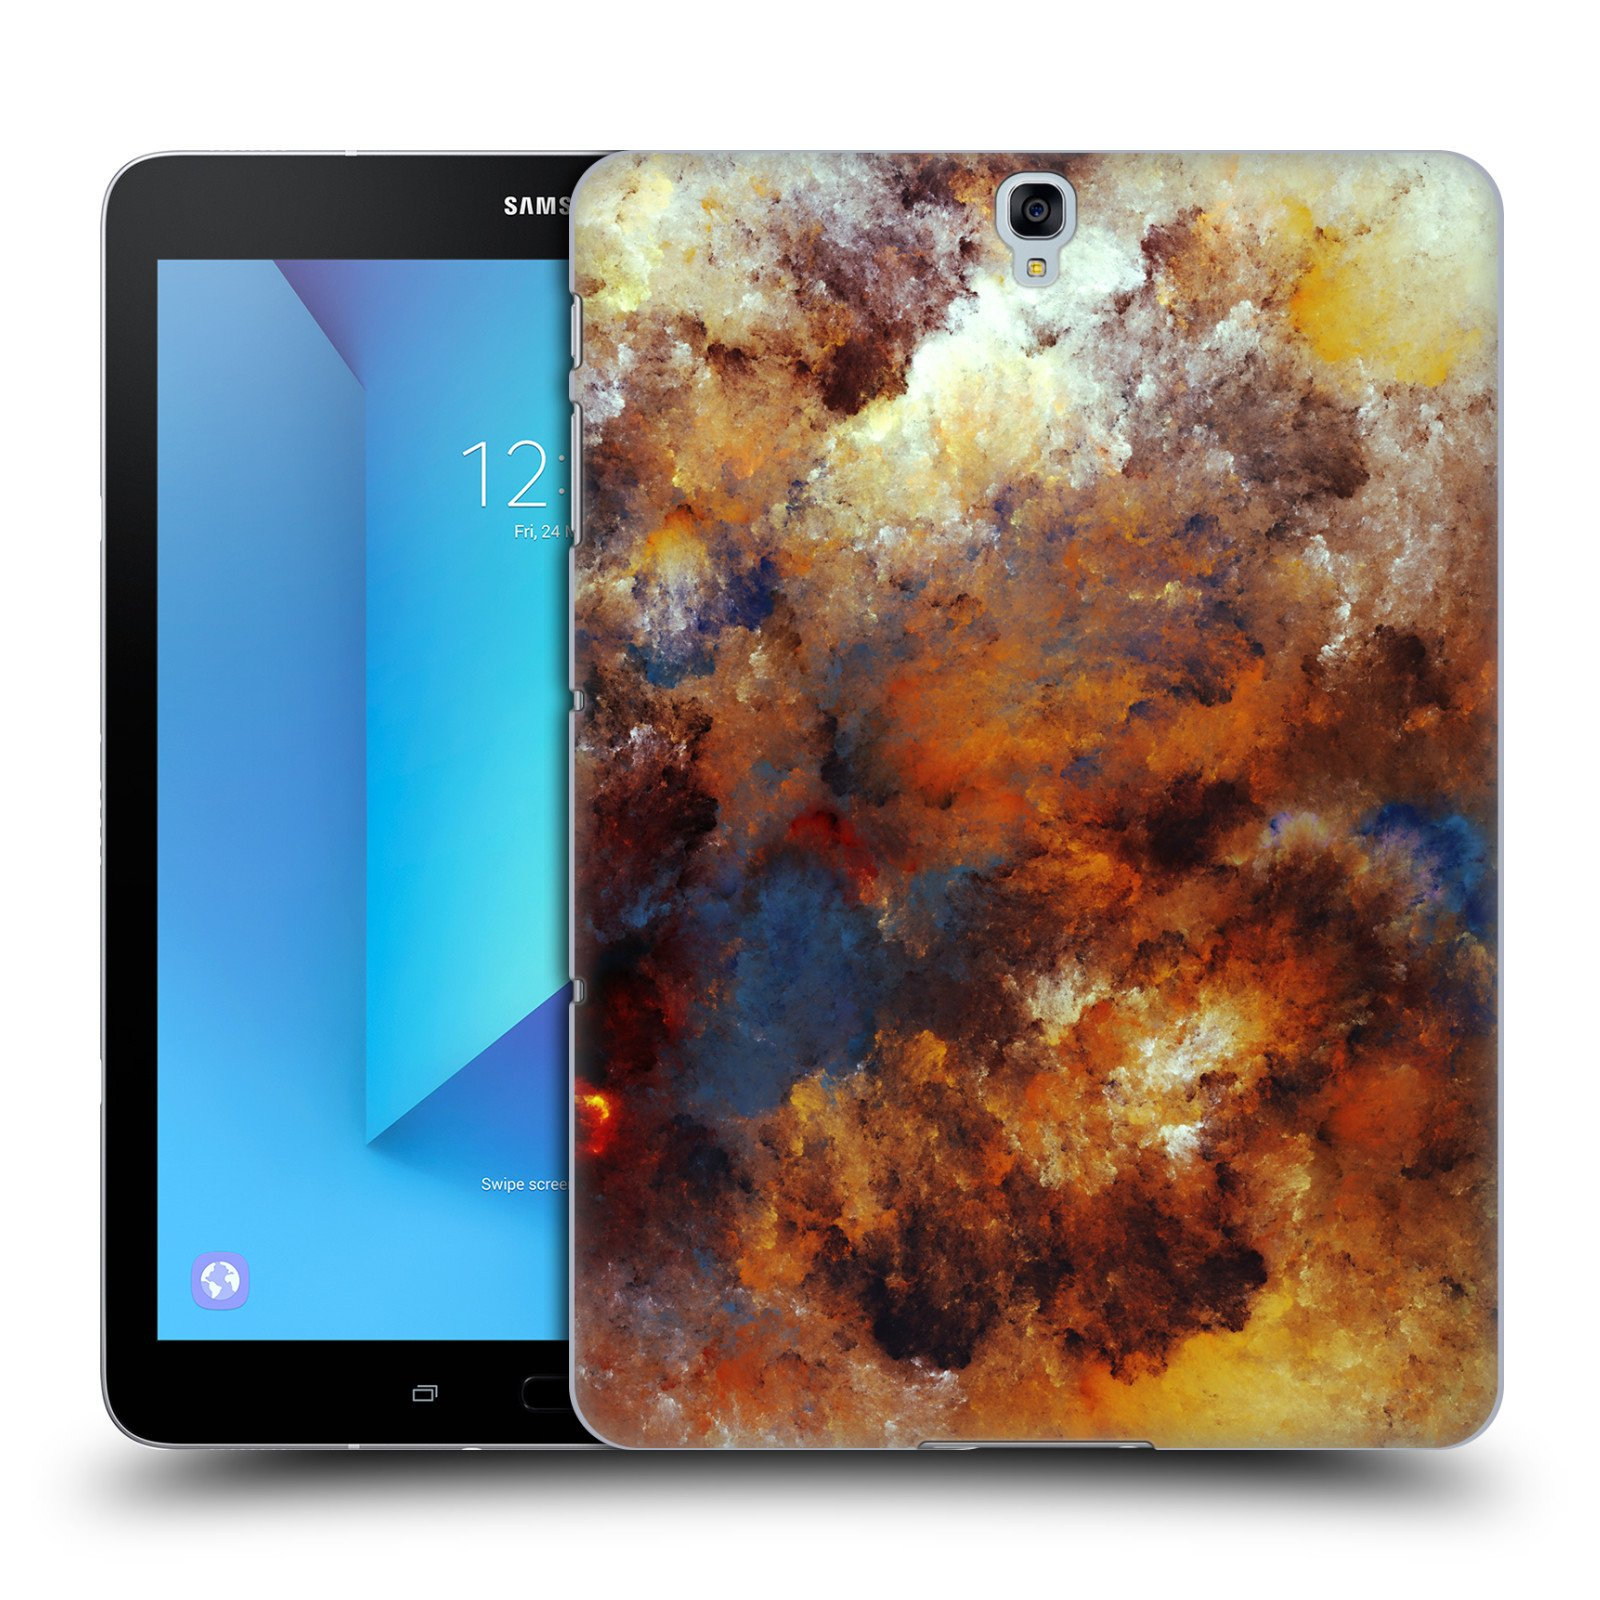 Official Andi GreyScale Chaotic Imagination Solar Flames Hard Back Case for Samsung Galaxy Tab S3 9.7